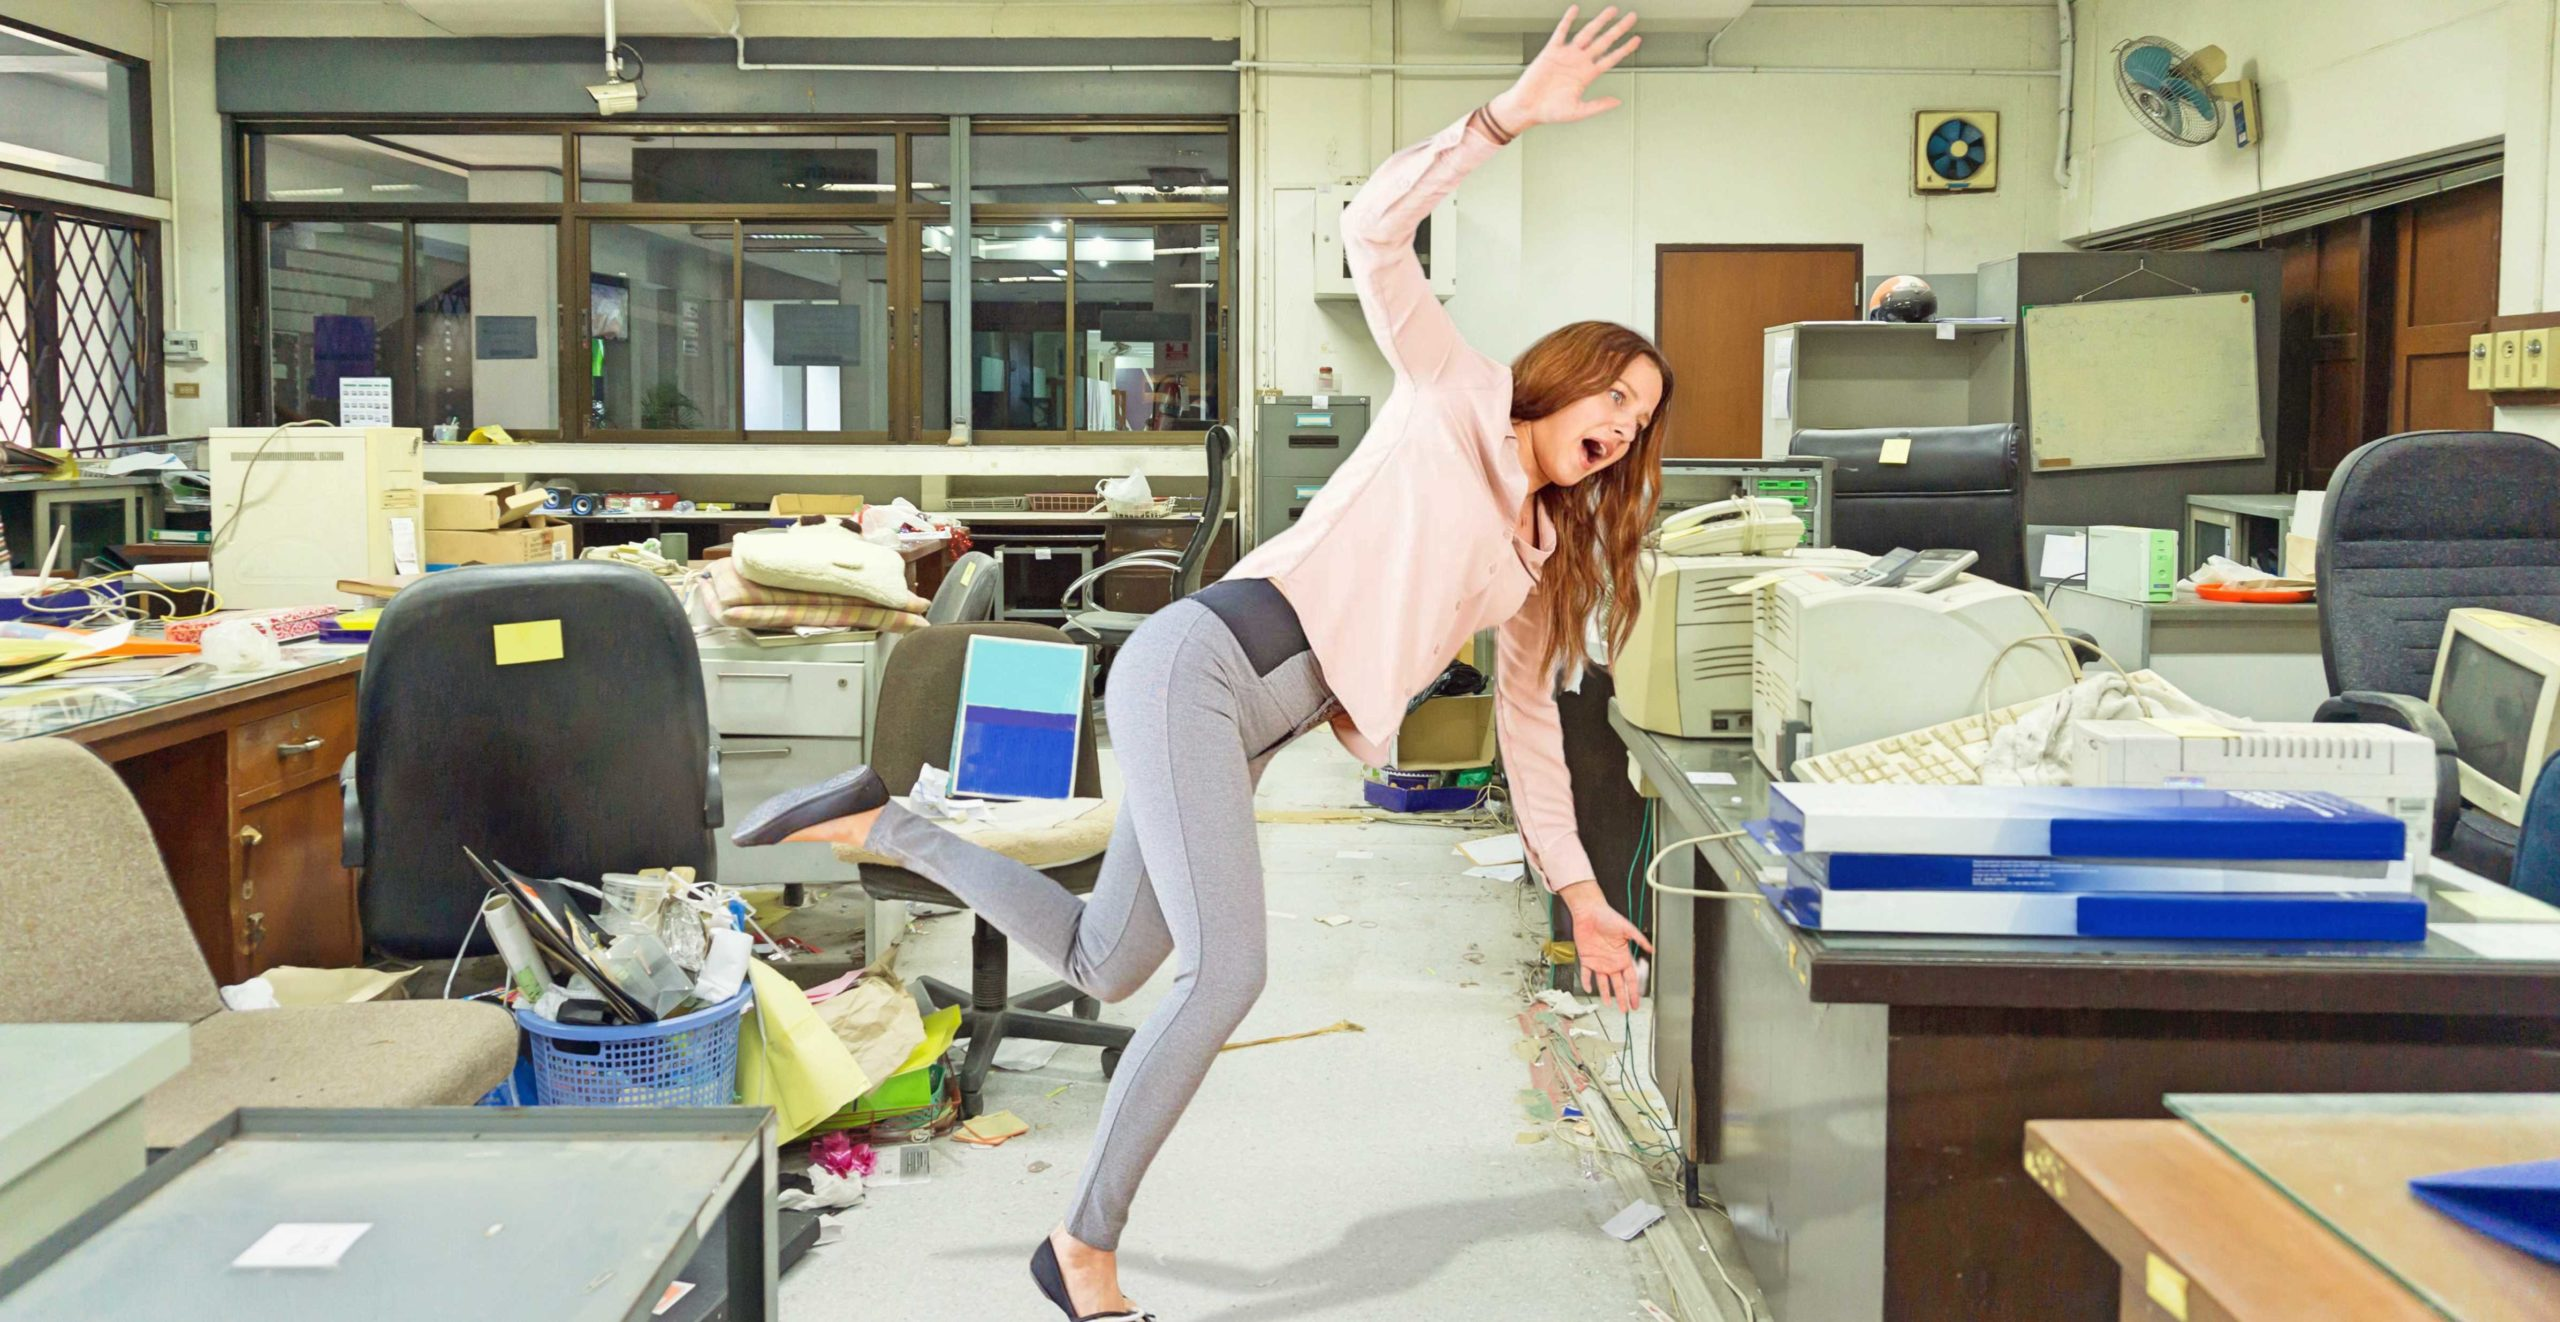 Improve Employee Safety With Office Cleaning Services in Springfield Missouri